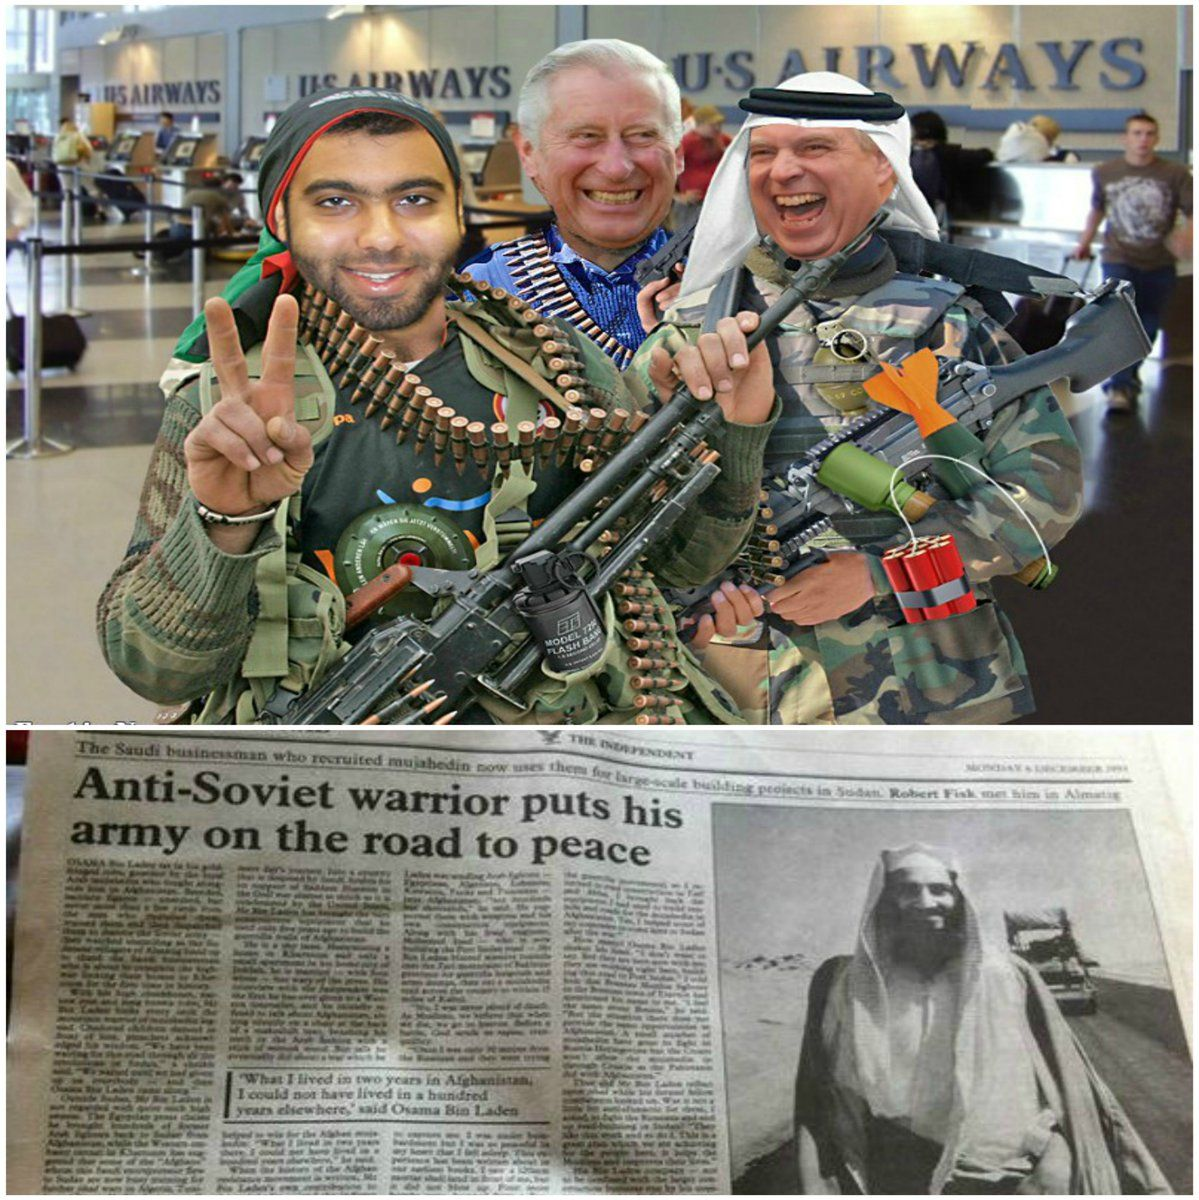 """Selling peace weapons in the middle east they are. >>> Histoyy speaks. >>> """"Anti-Soviet warrior puts his army on the road for peace""""."""